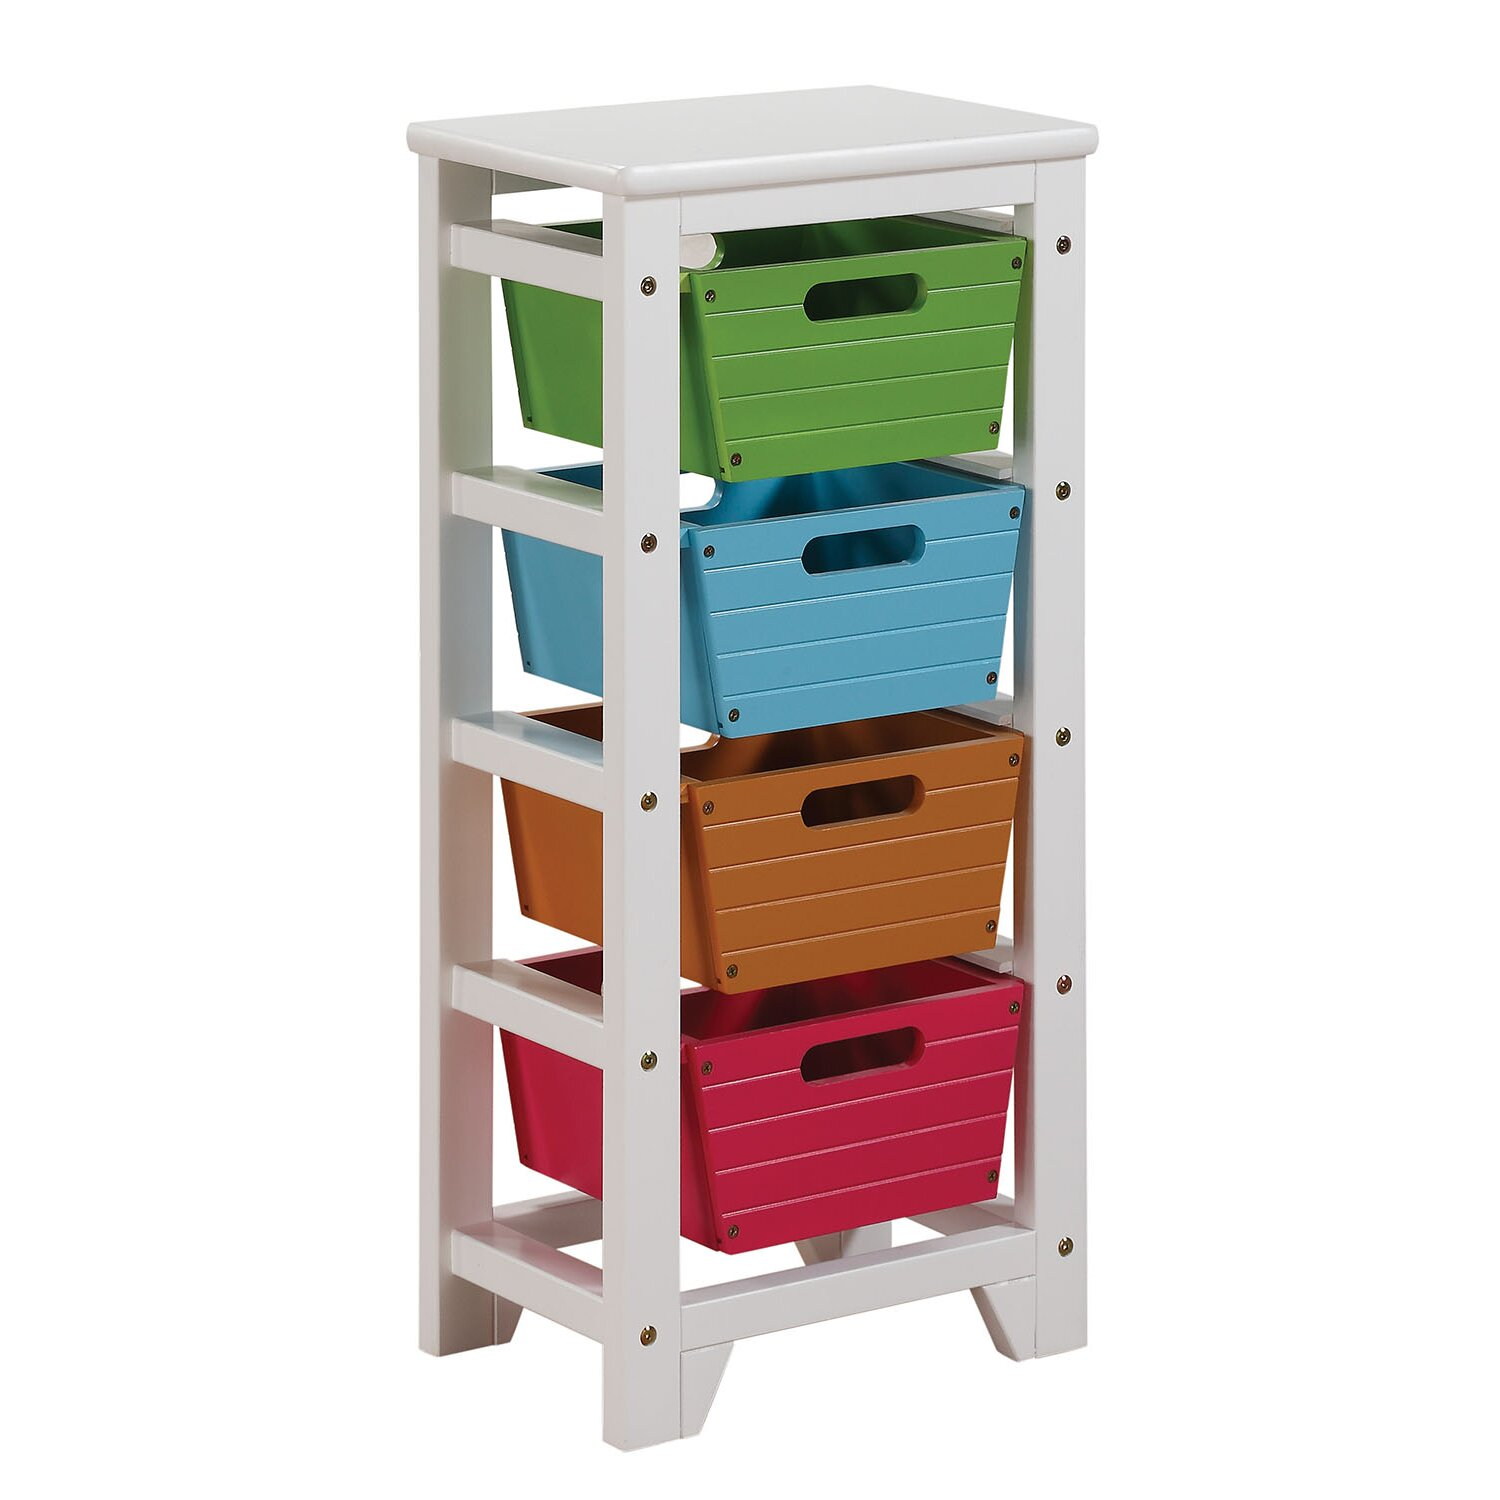 ACME Furniture Darvin Storage Rack with 4 Baskets